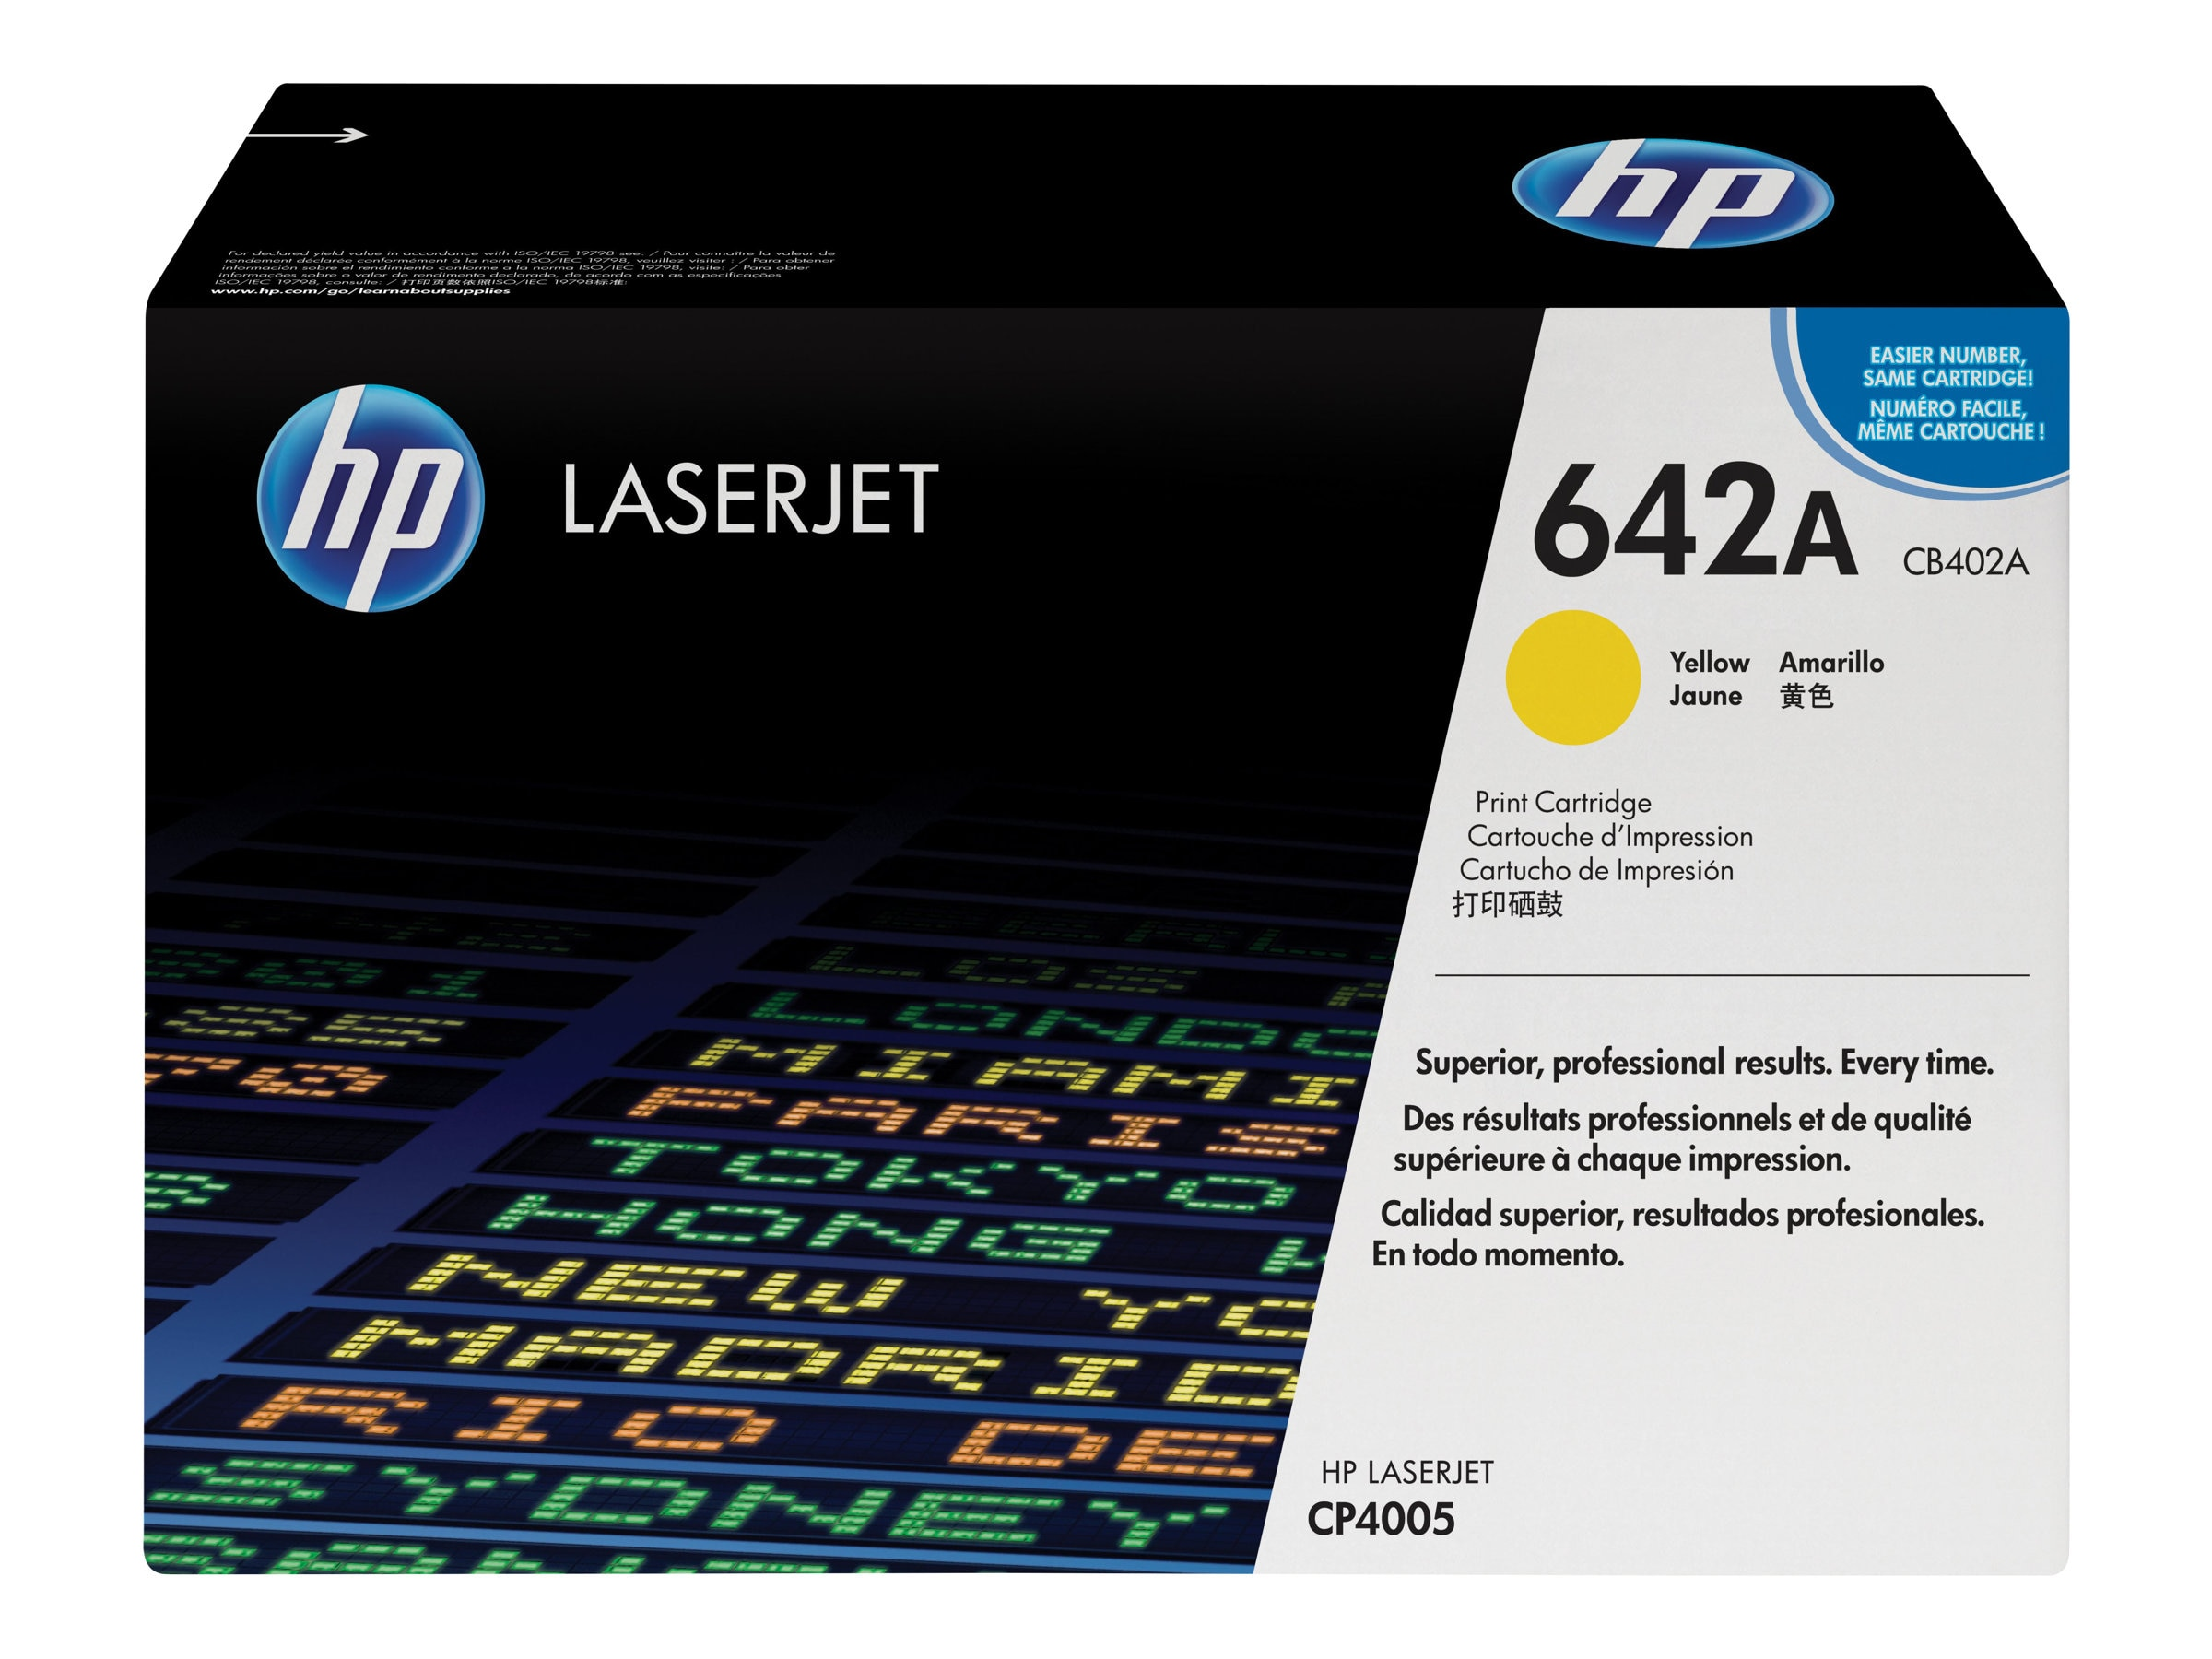 HP 642A (CB402A) Yellow Original LaserJet Toner Cartridge for HP LaserJet CP4005 Printer, CB402A, 7176228, Toner and Imaging Components